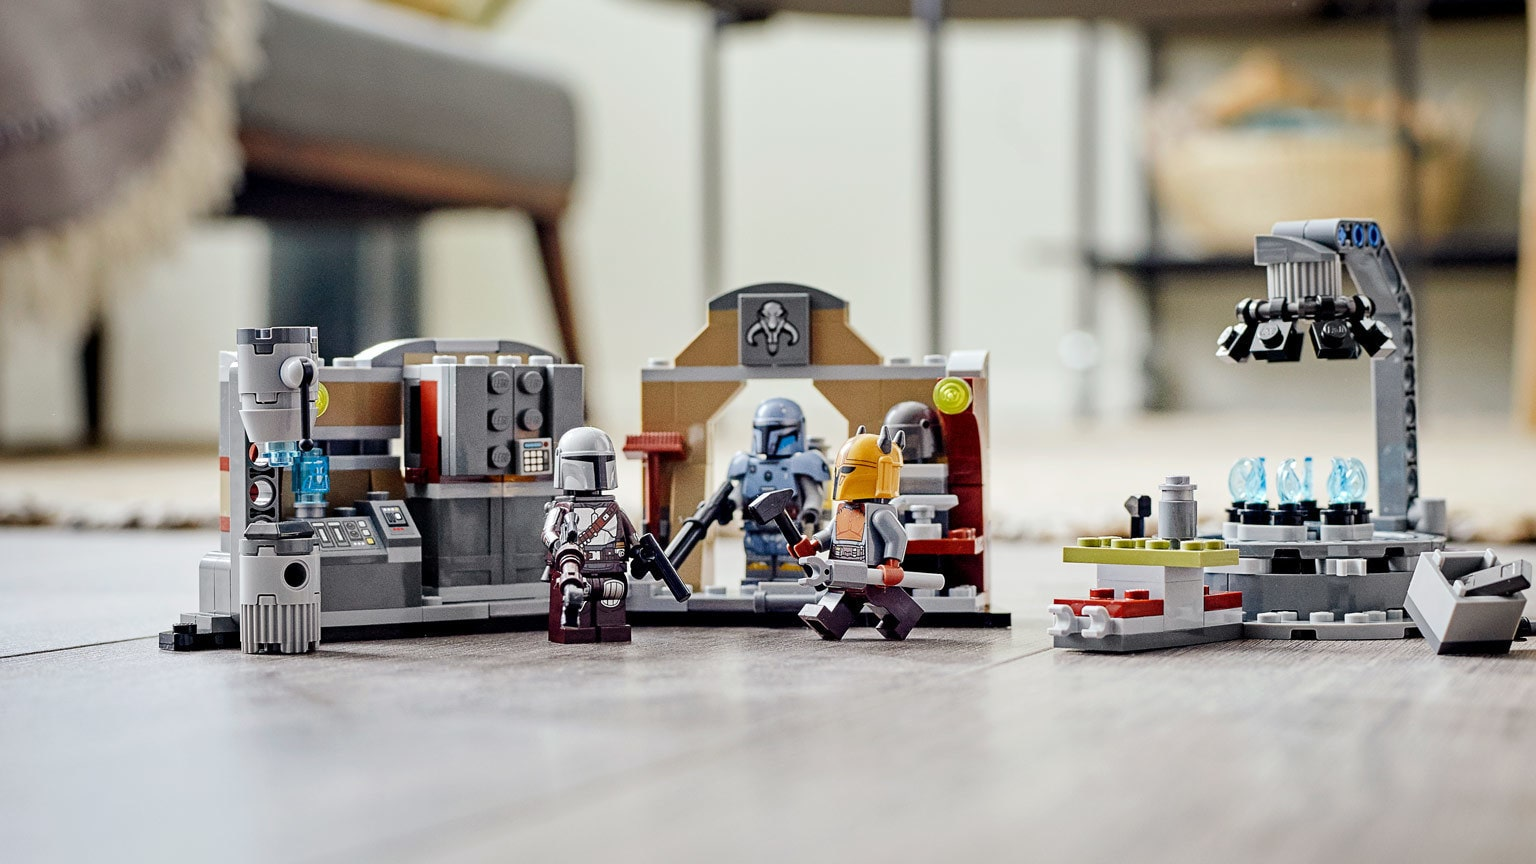 Create The Armorer's Mandalorian Forge in LEGO Brick - Exclusive Reveal